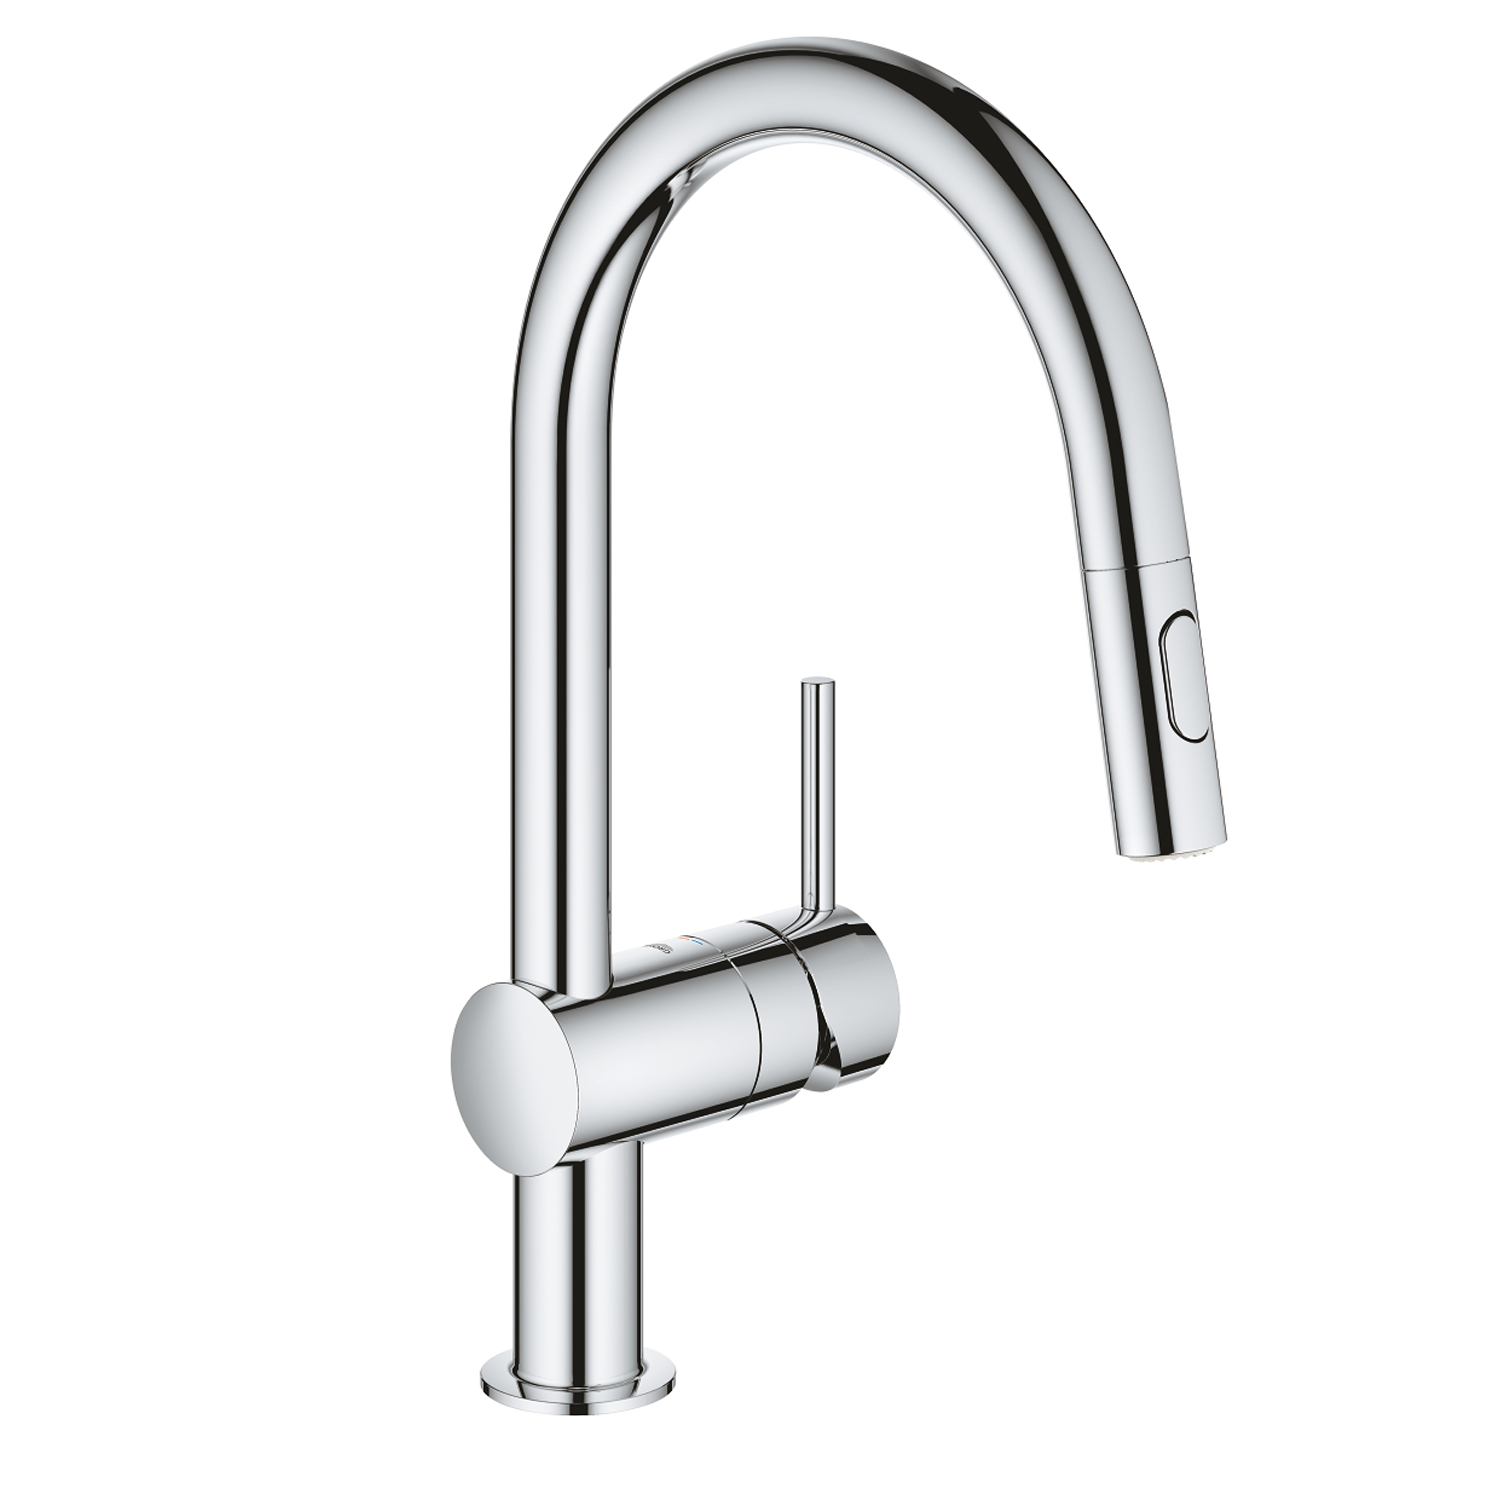 Grohe | Minta | 32321002 | Sink Mixer 1/2 Inch Chrome